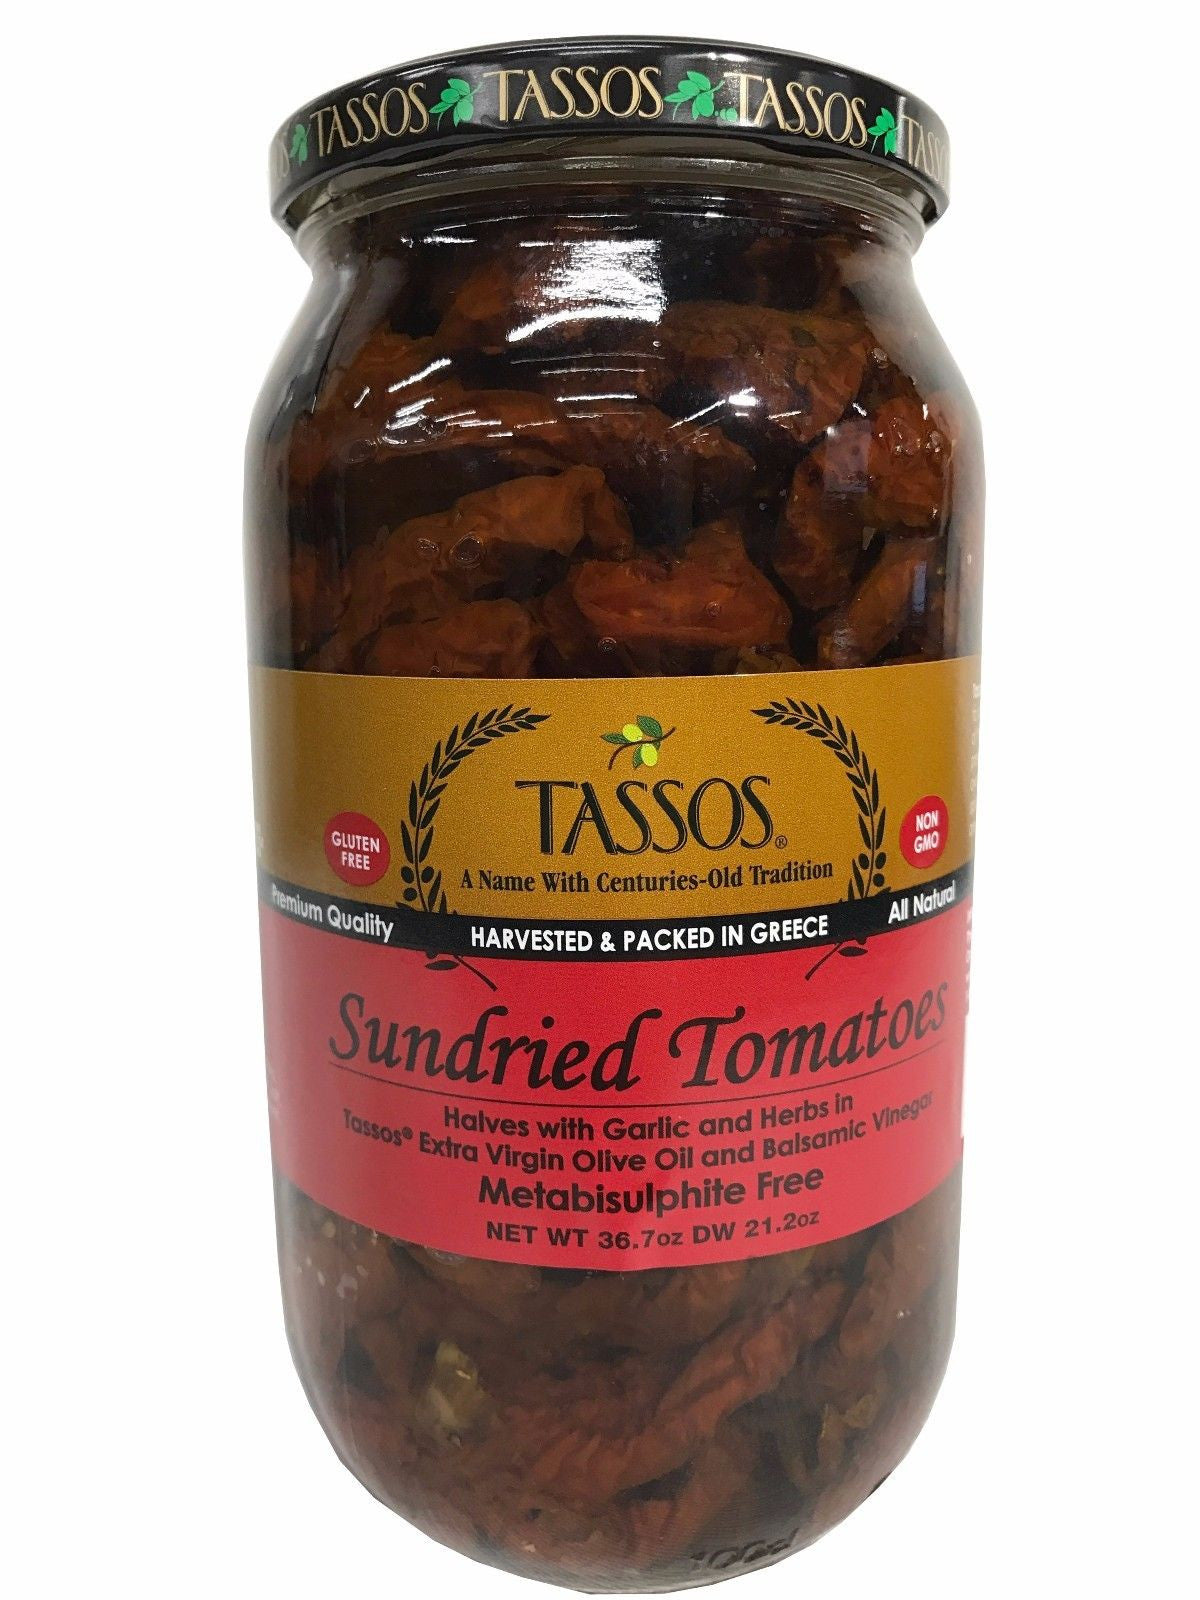 Tassos Sundried Tomatoes with Garlic, Herbs, Olive oil, Balsamic Vinegar 36.7oz